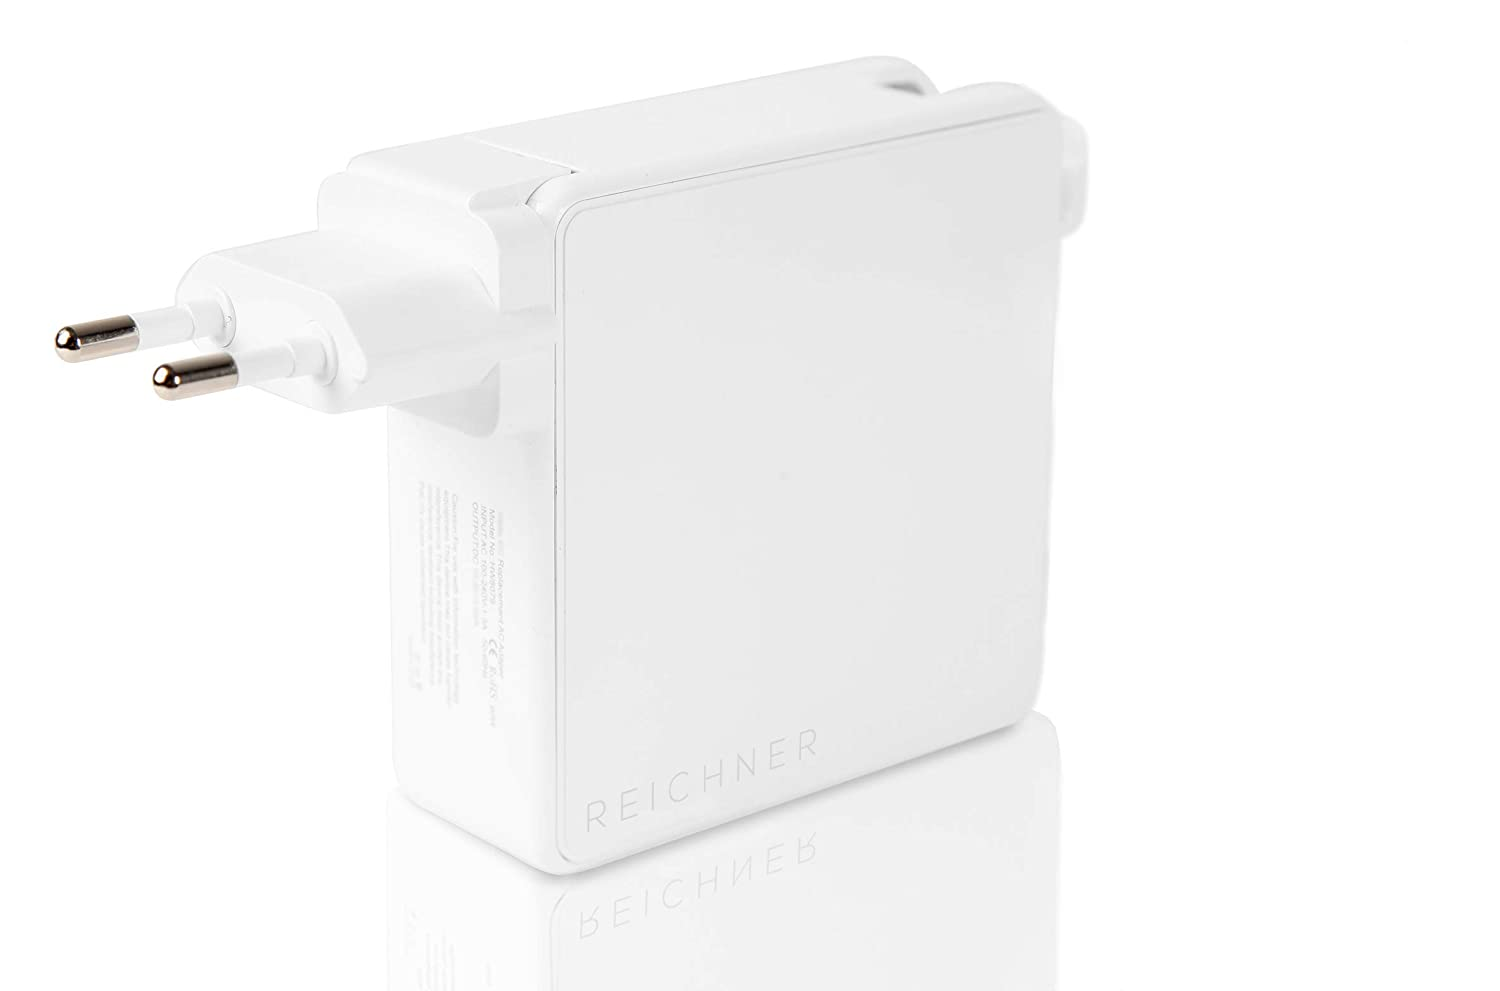 Reichner 45W Cargador Portátil Adaptador Compatible con Apple MacBook Air 11 13